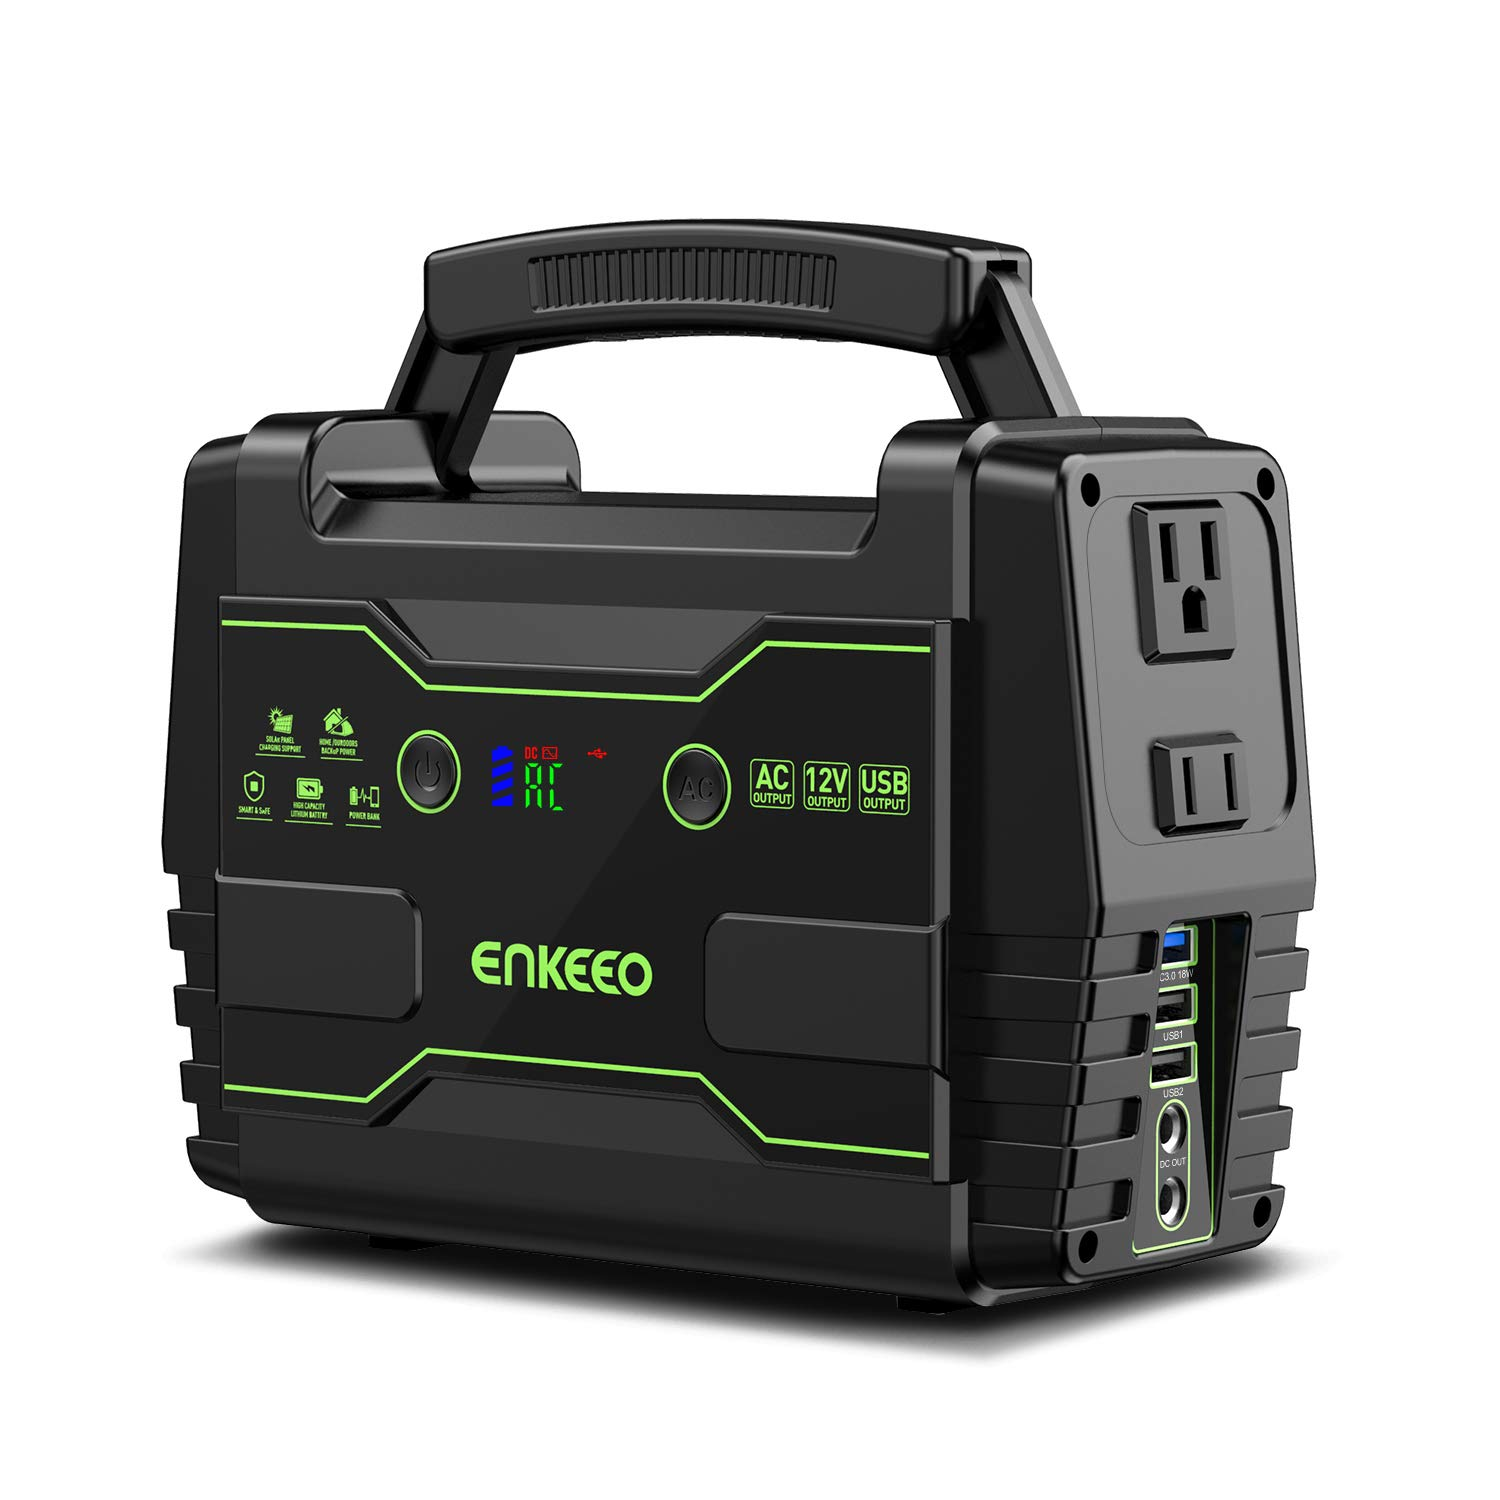 ENKEEO Portable Power Station 155Wh Lithium Battery Supply with AC DC QC3.0 USB Ports, Solar Electric Generator for Camping Travel Home Emergency